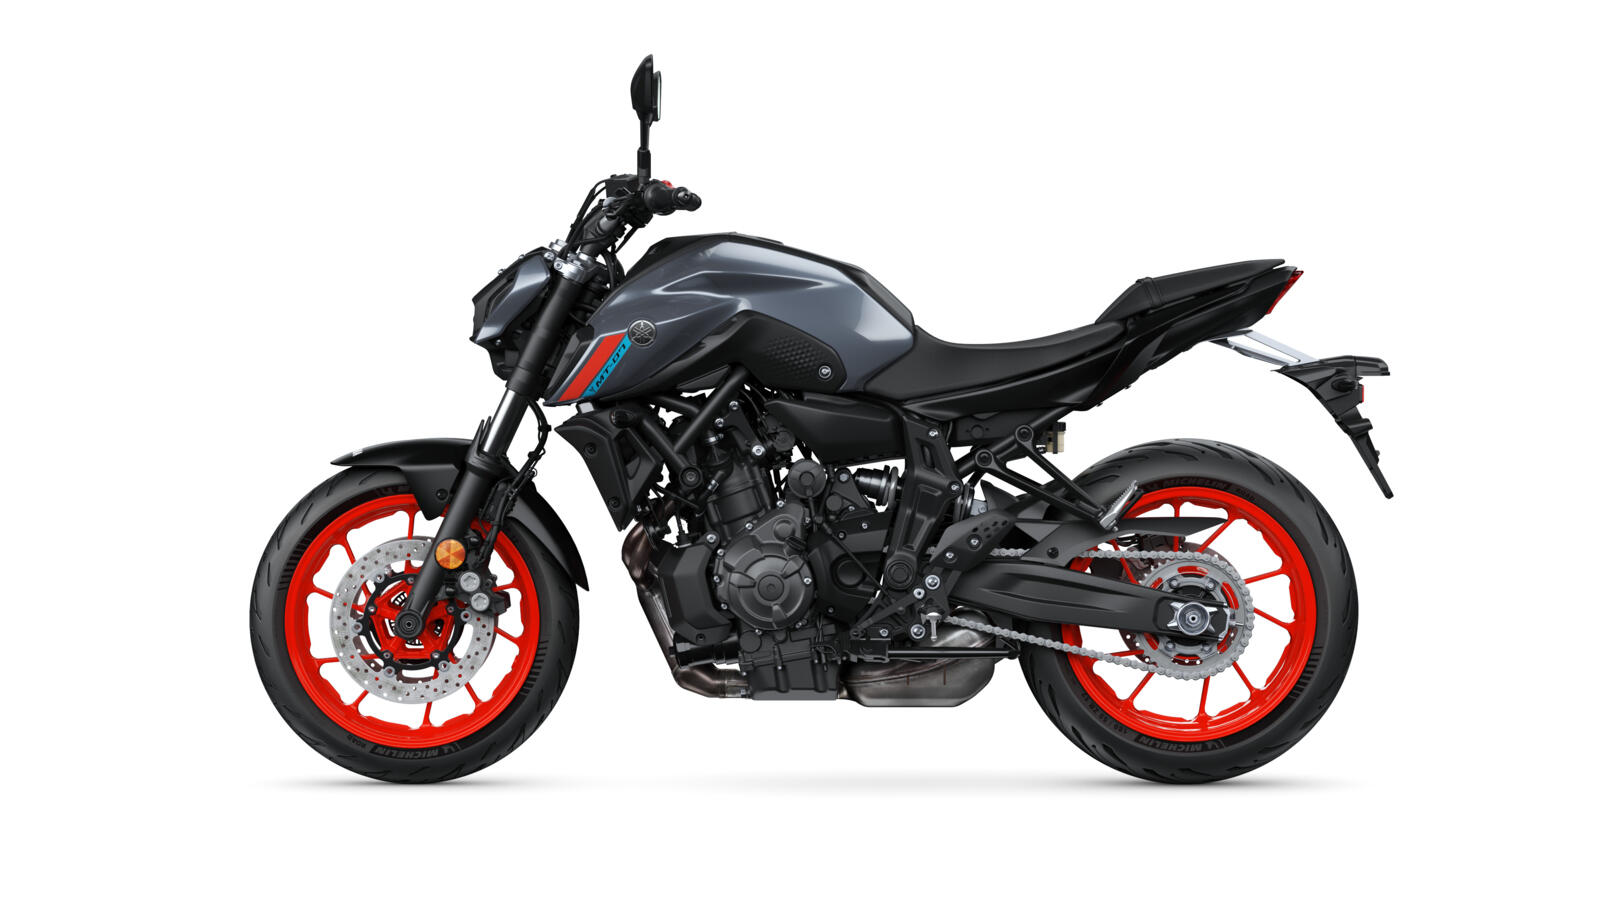 Yamaha MT-07 2021 model